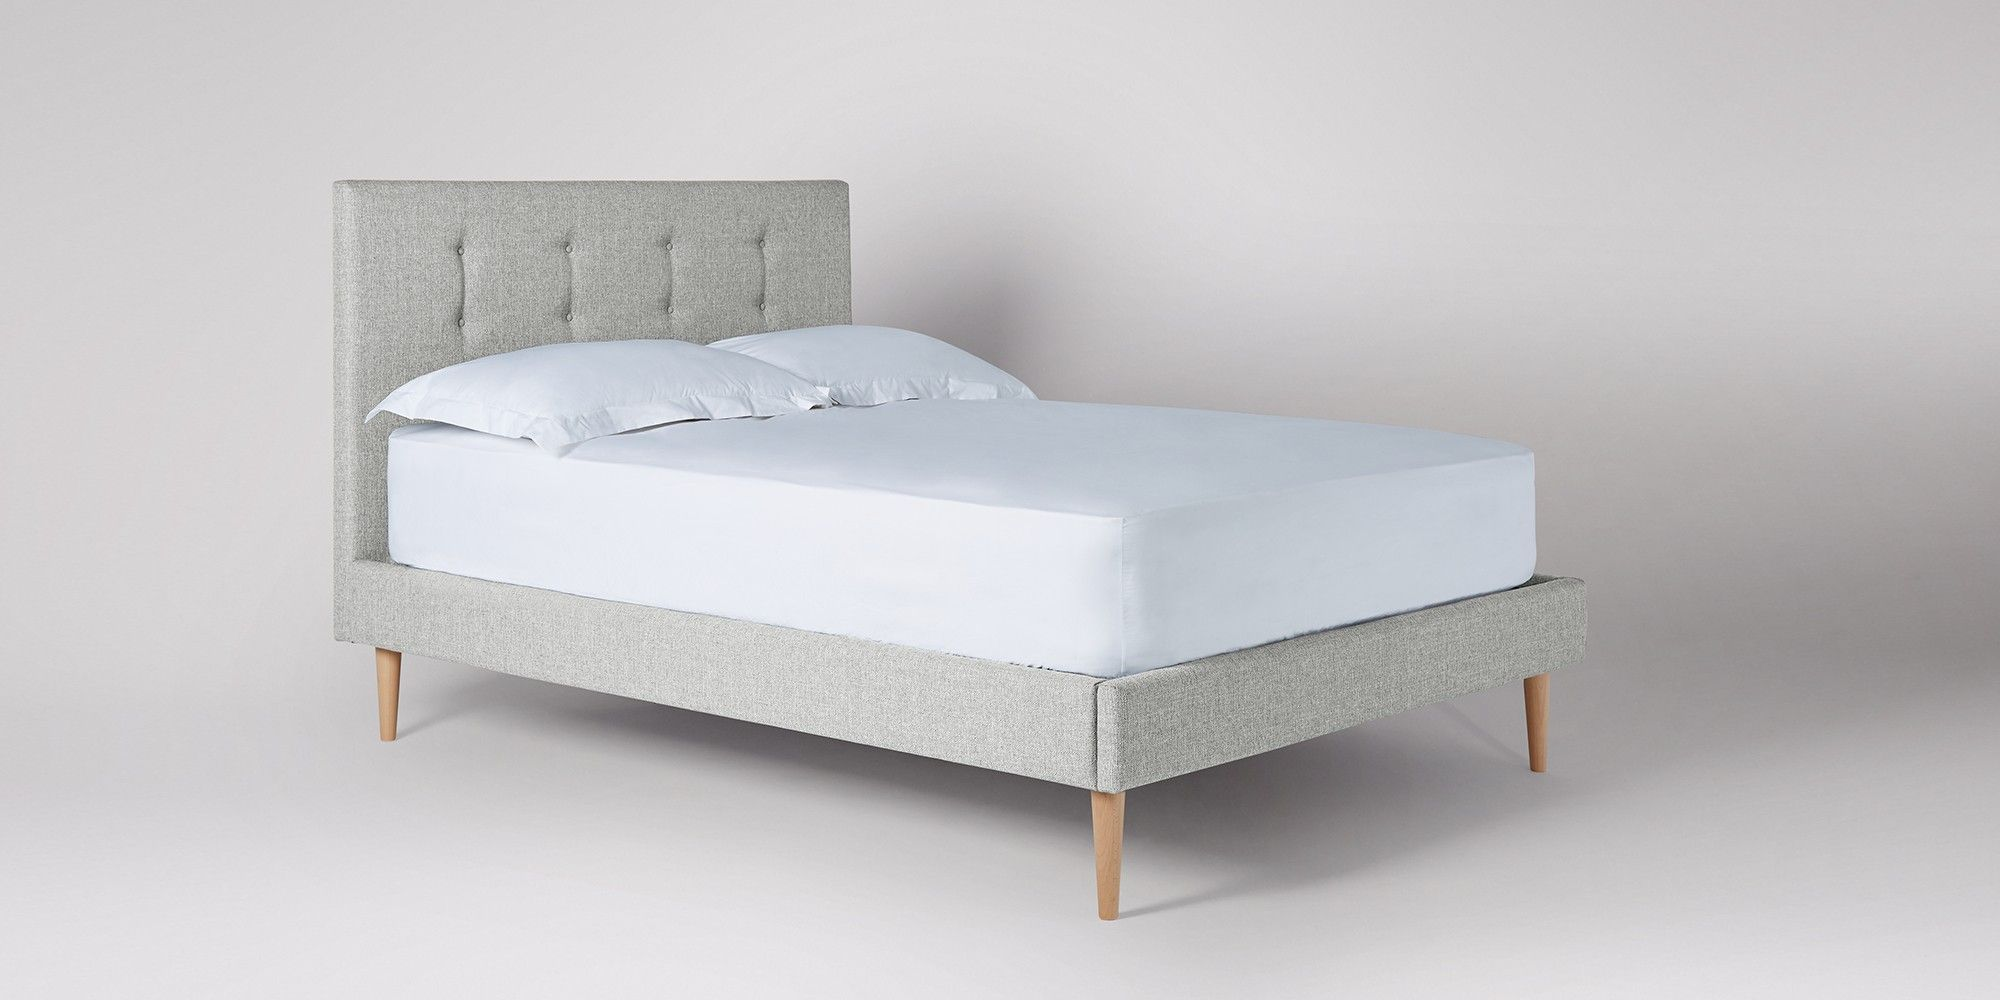 Swoon Editions Frame bed, midcentury style Upholstered